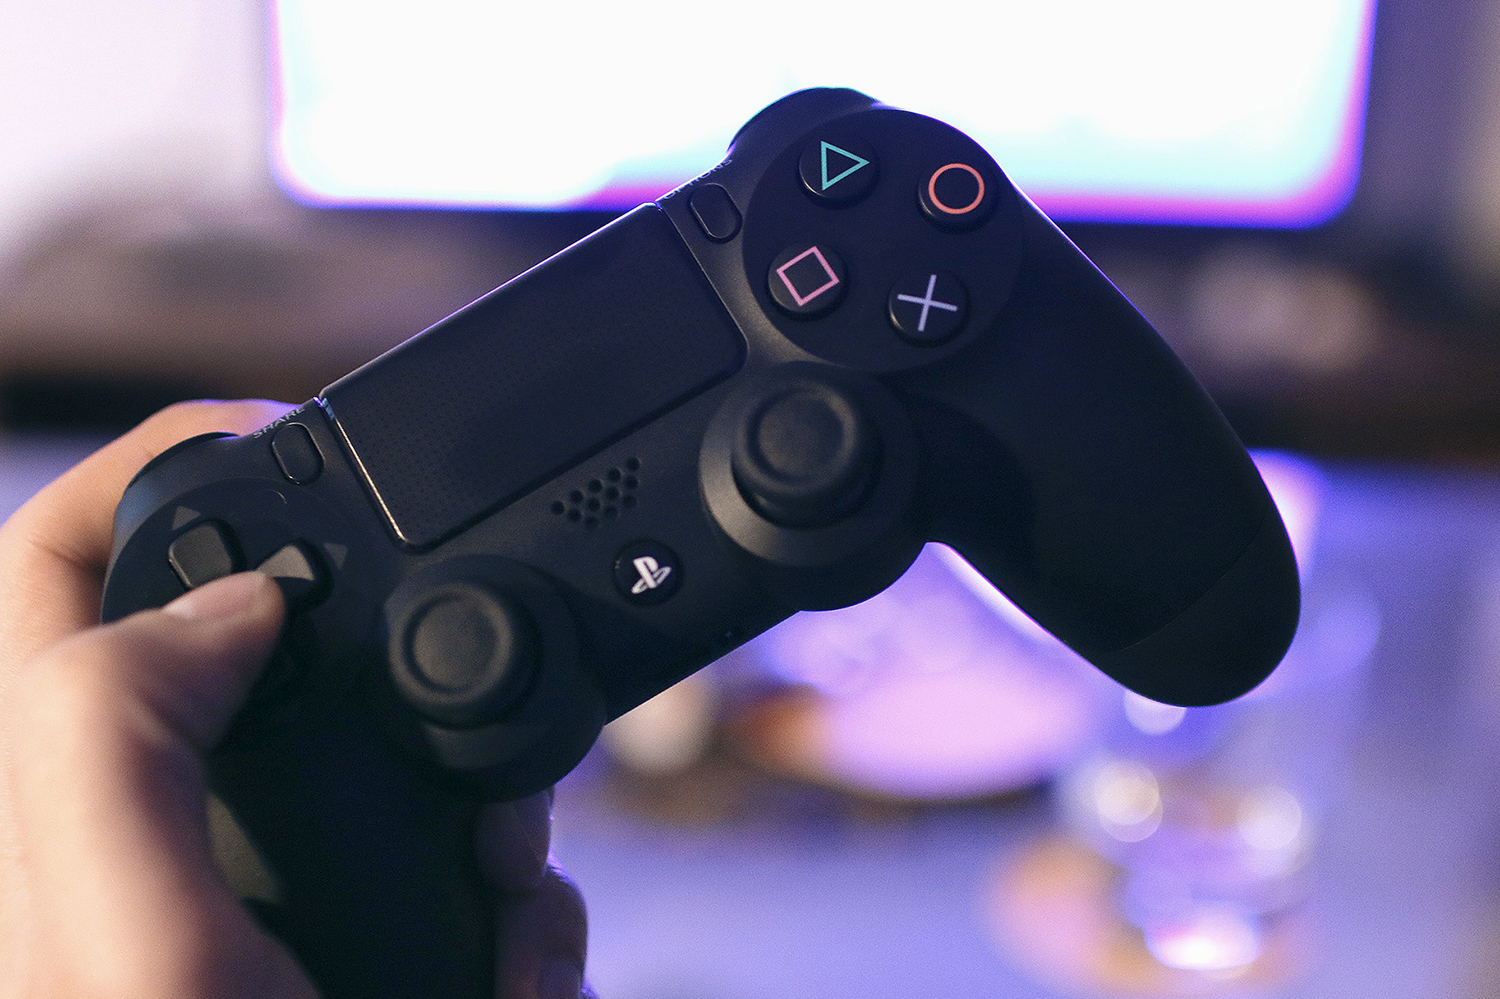 How To Take Care Of Your Game Console?